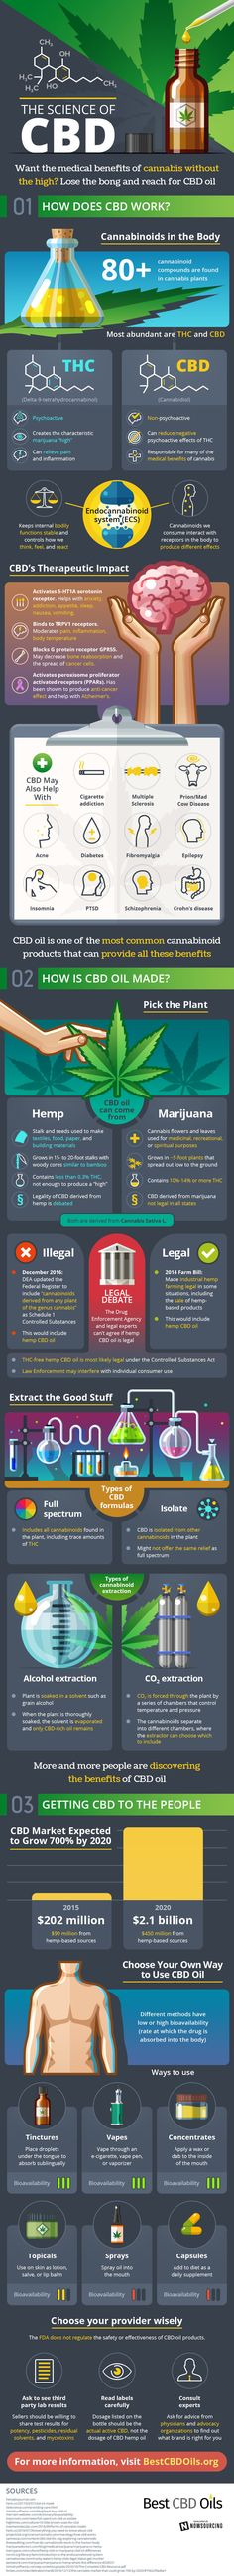 CBD Oil -The Science [Infographic] | HempWorx Official